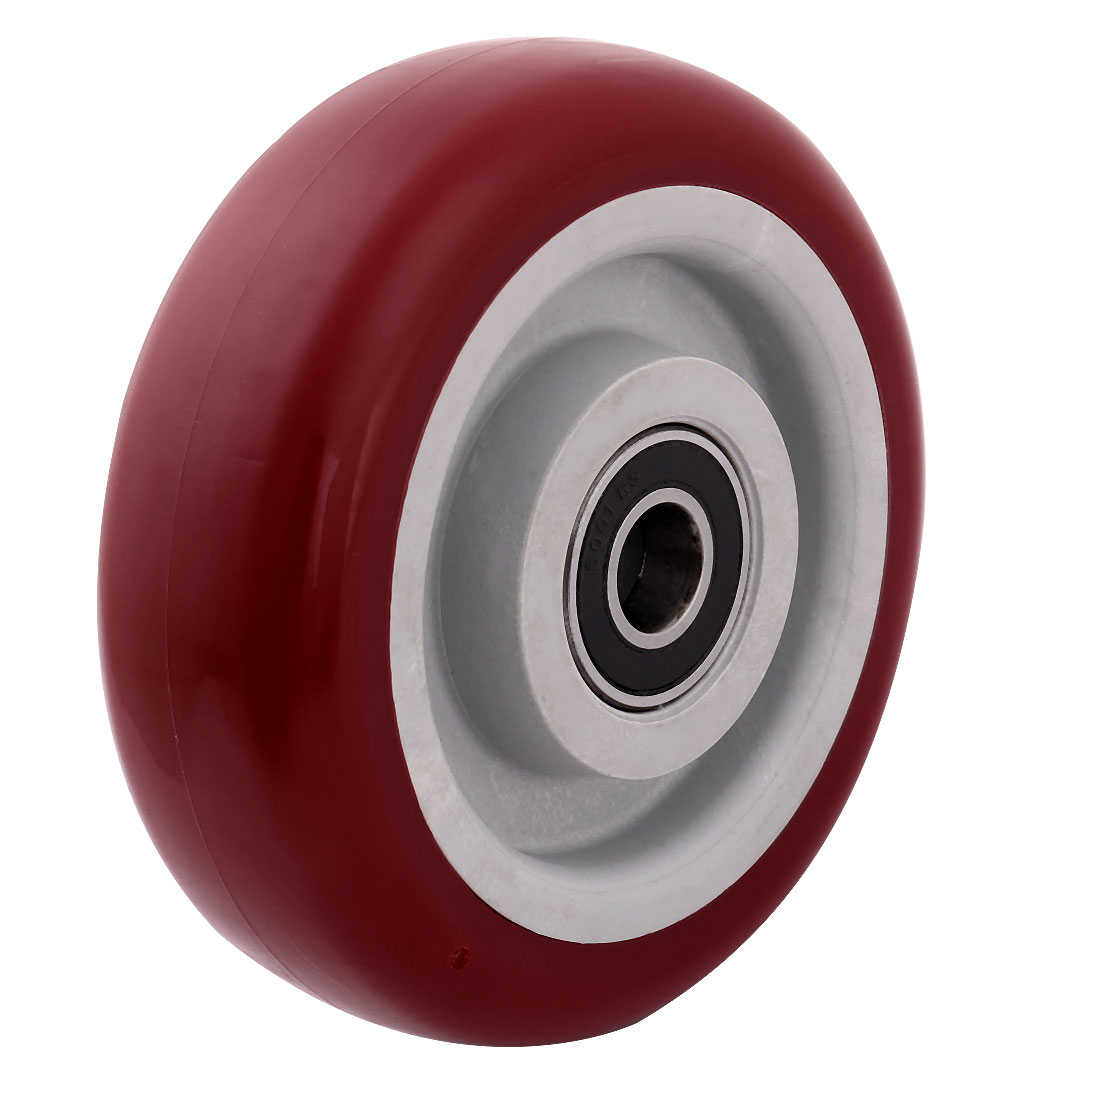 Household Market Shopping Cart Pallet Hand Truck Replacement Casters Wheel Red